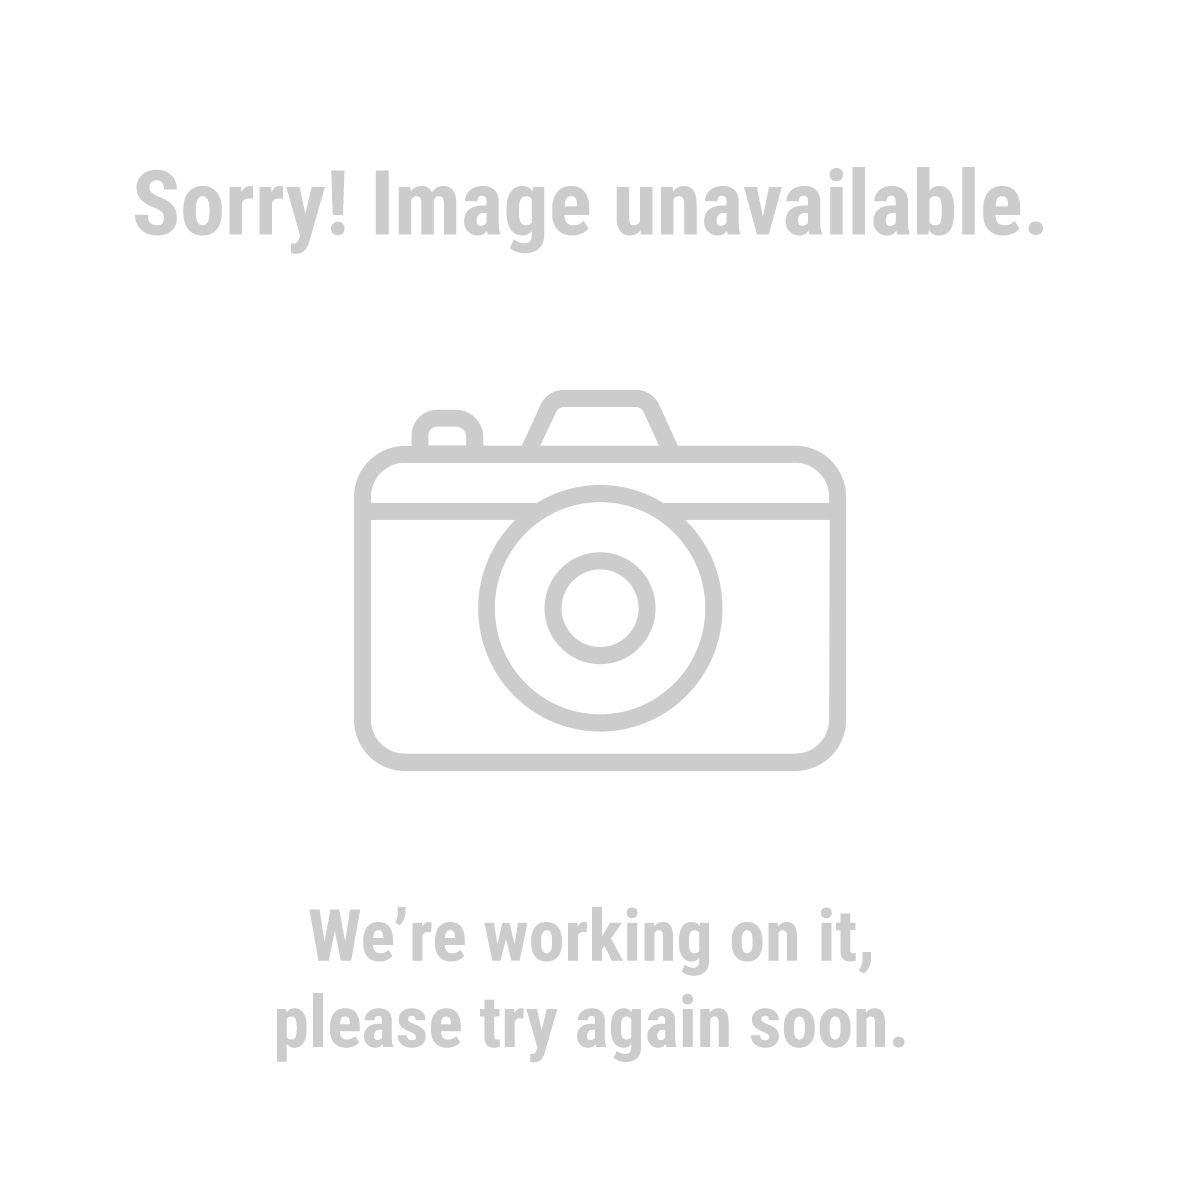 8 Piece 3/4 in. Drive SAE Impact Socket Set